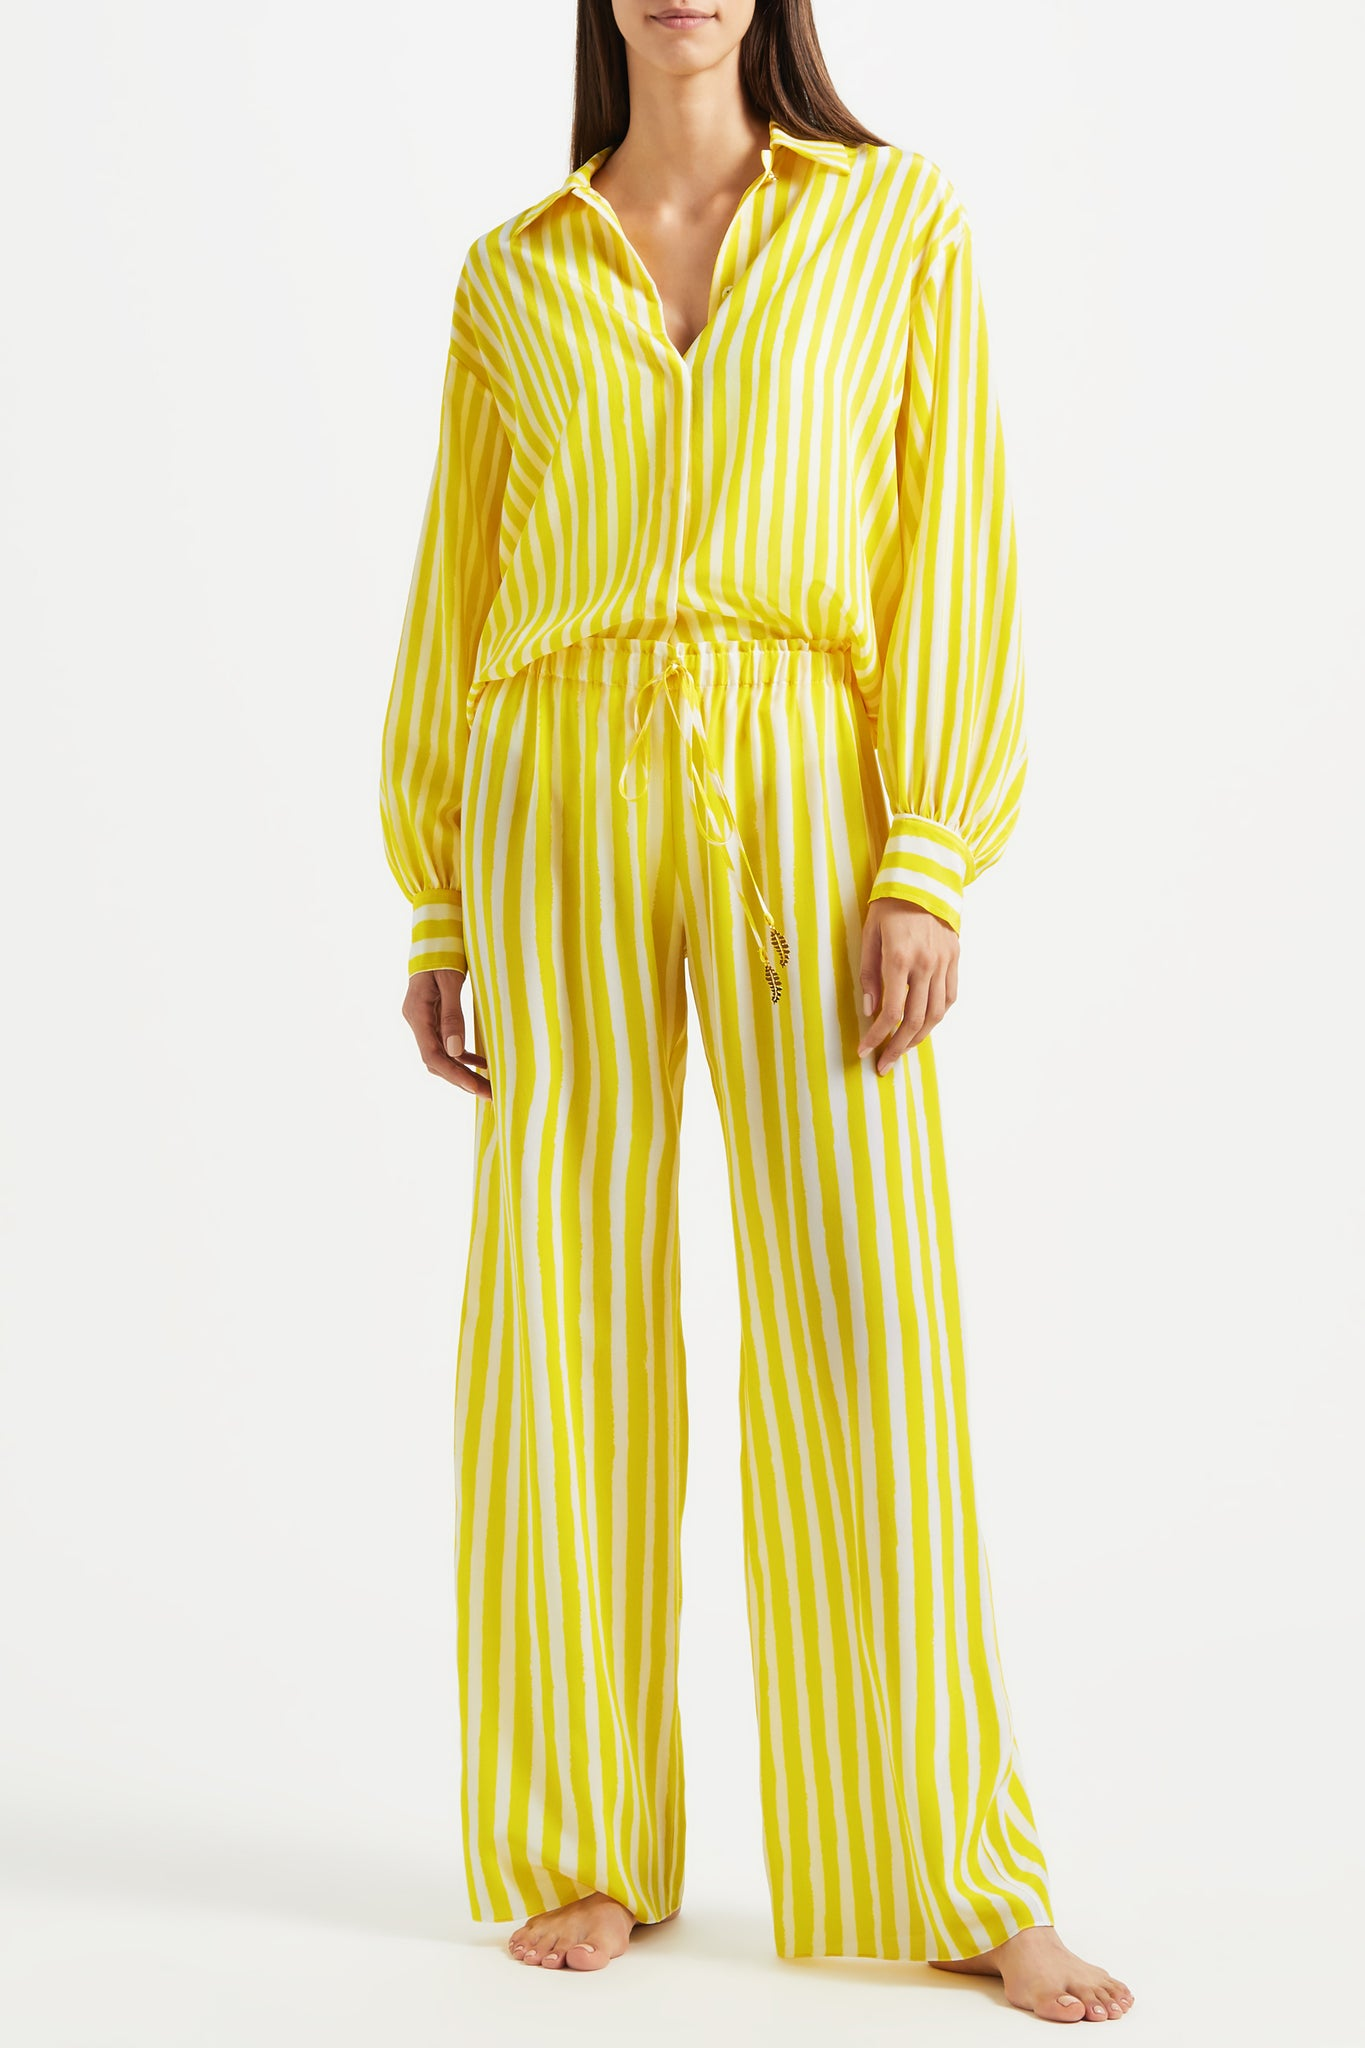 Kalmar Ayah trousers in yellow brush stripe